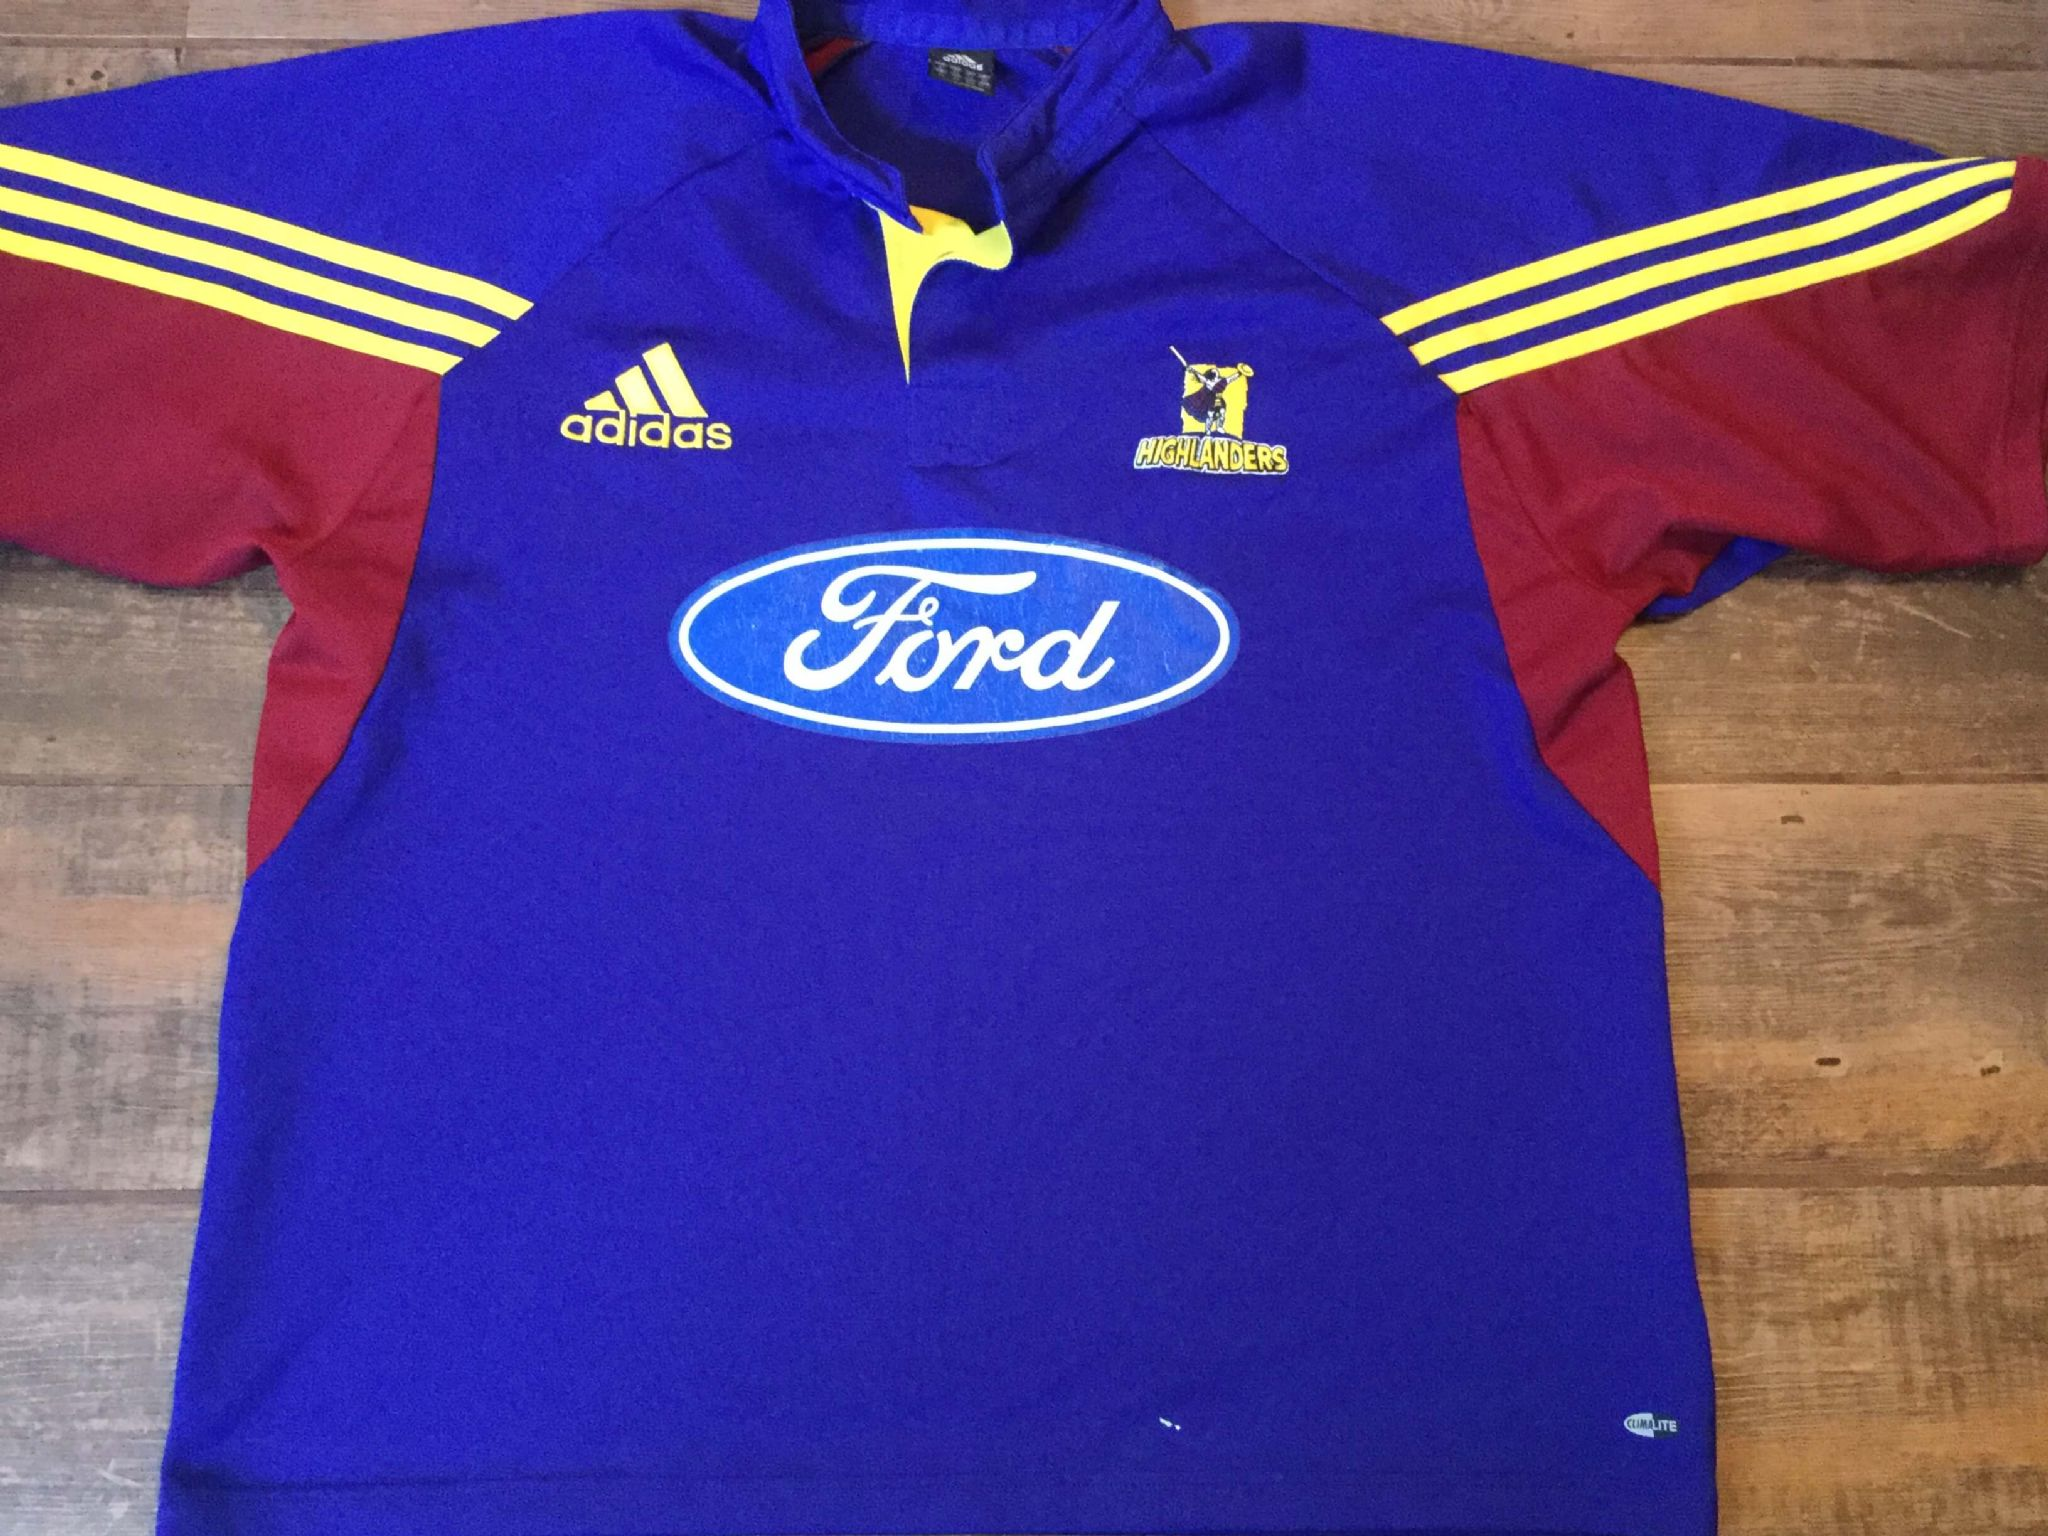 Classic Rugby Shirts 2003 Highlanders Vintage Old Jerseys